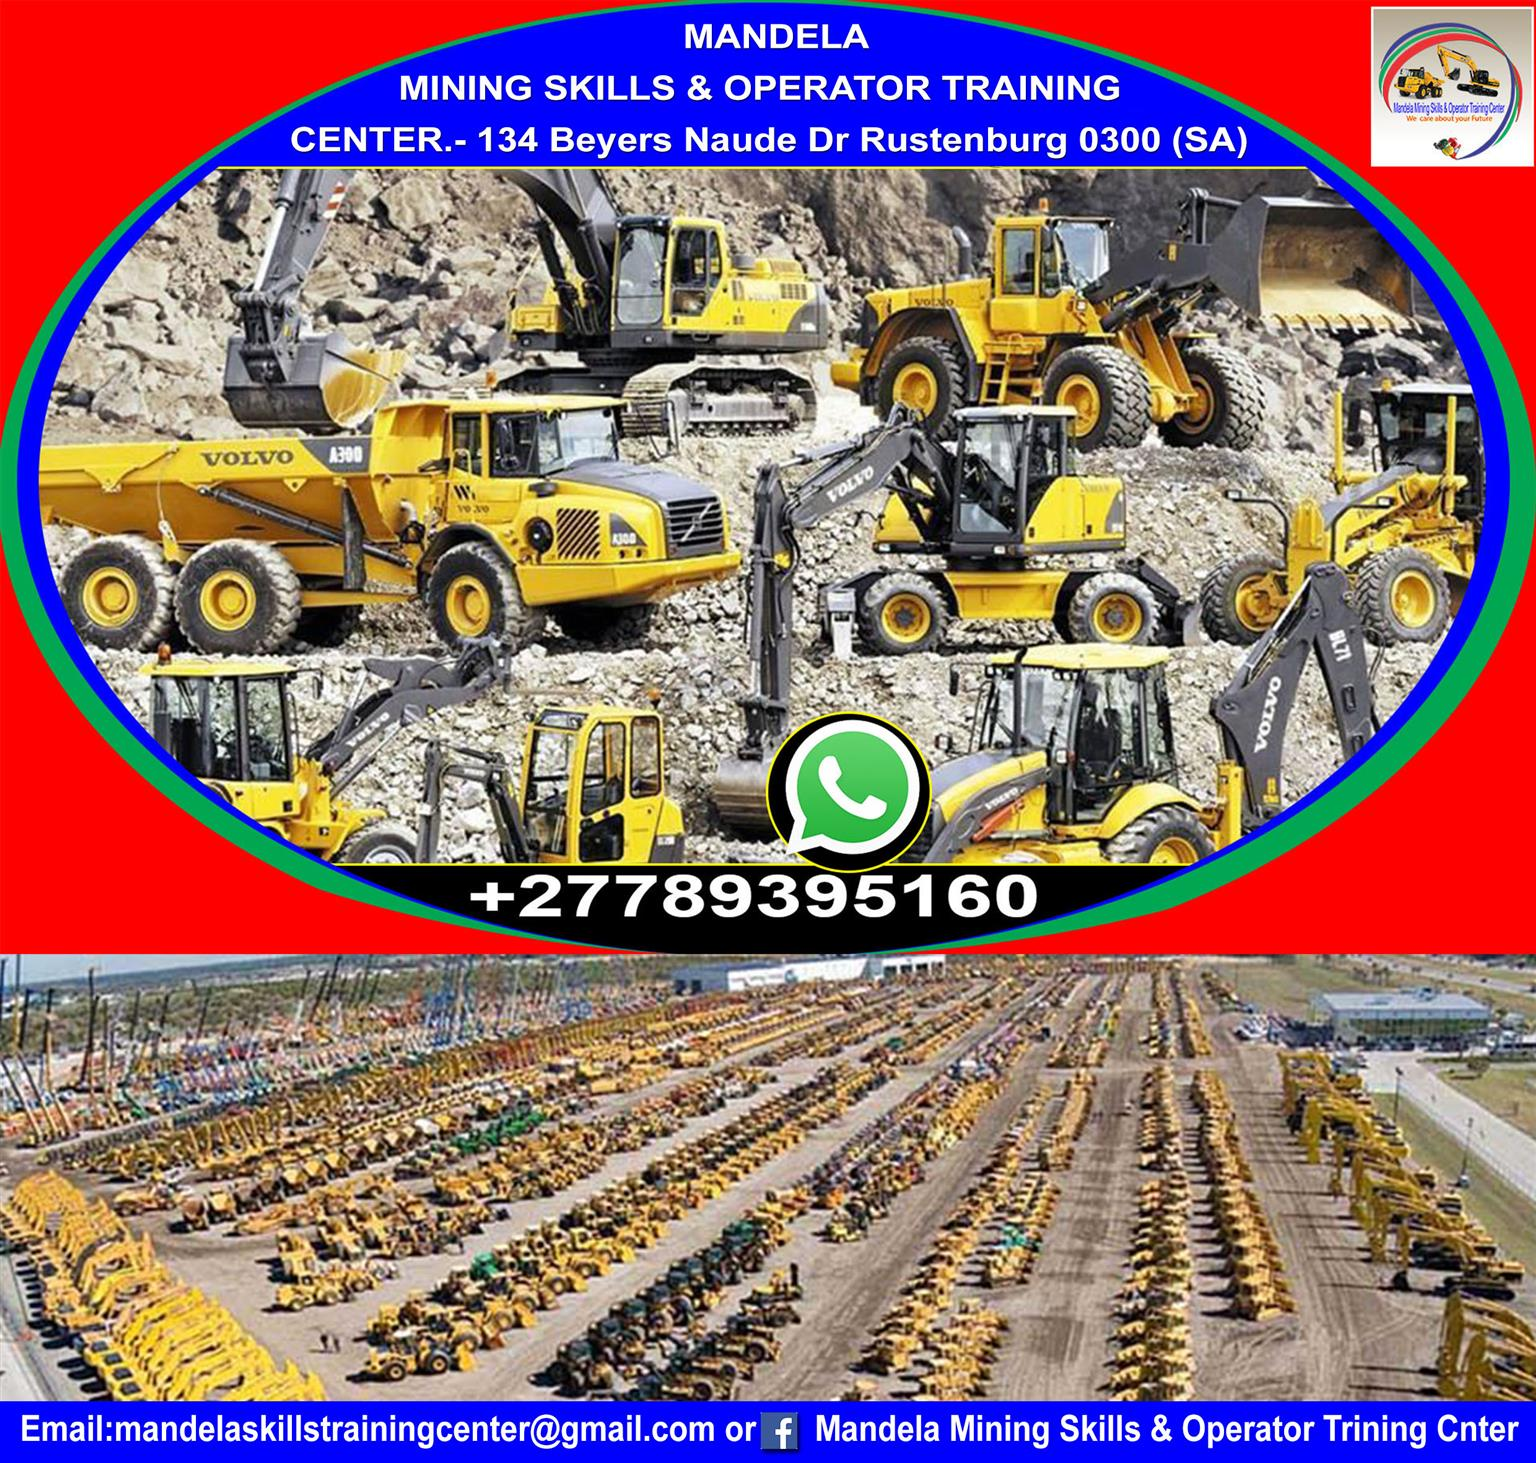 MANDELA MINING SKILLS & OPERATOR TRAININ CENTER SOUTH AFRICA + 27789395160